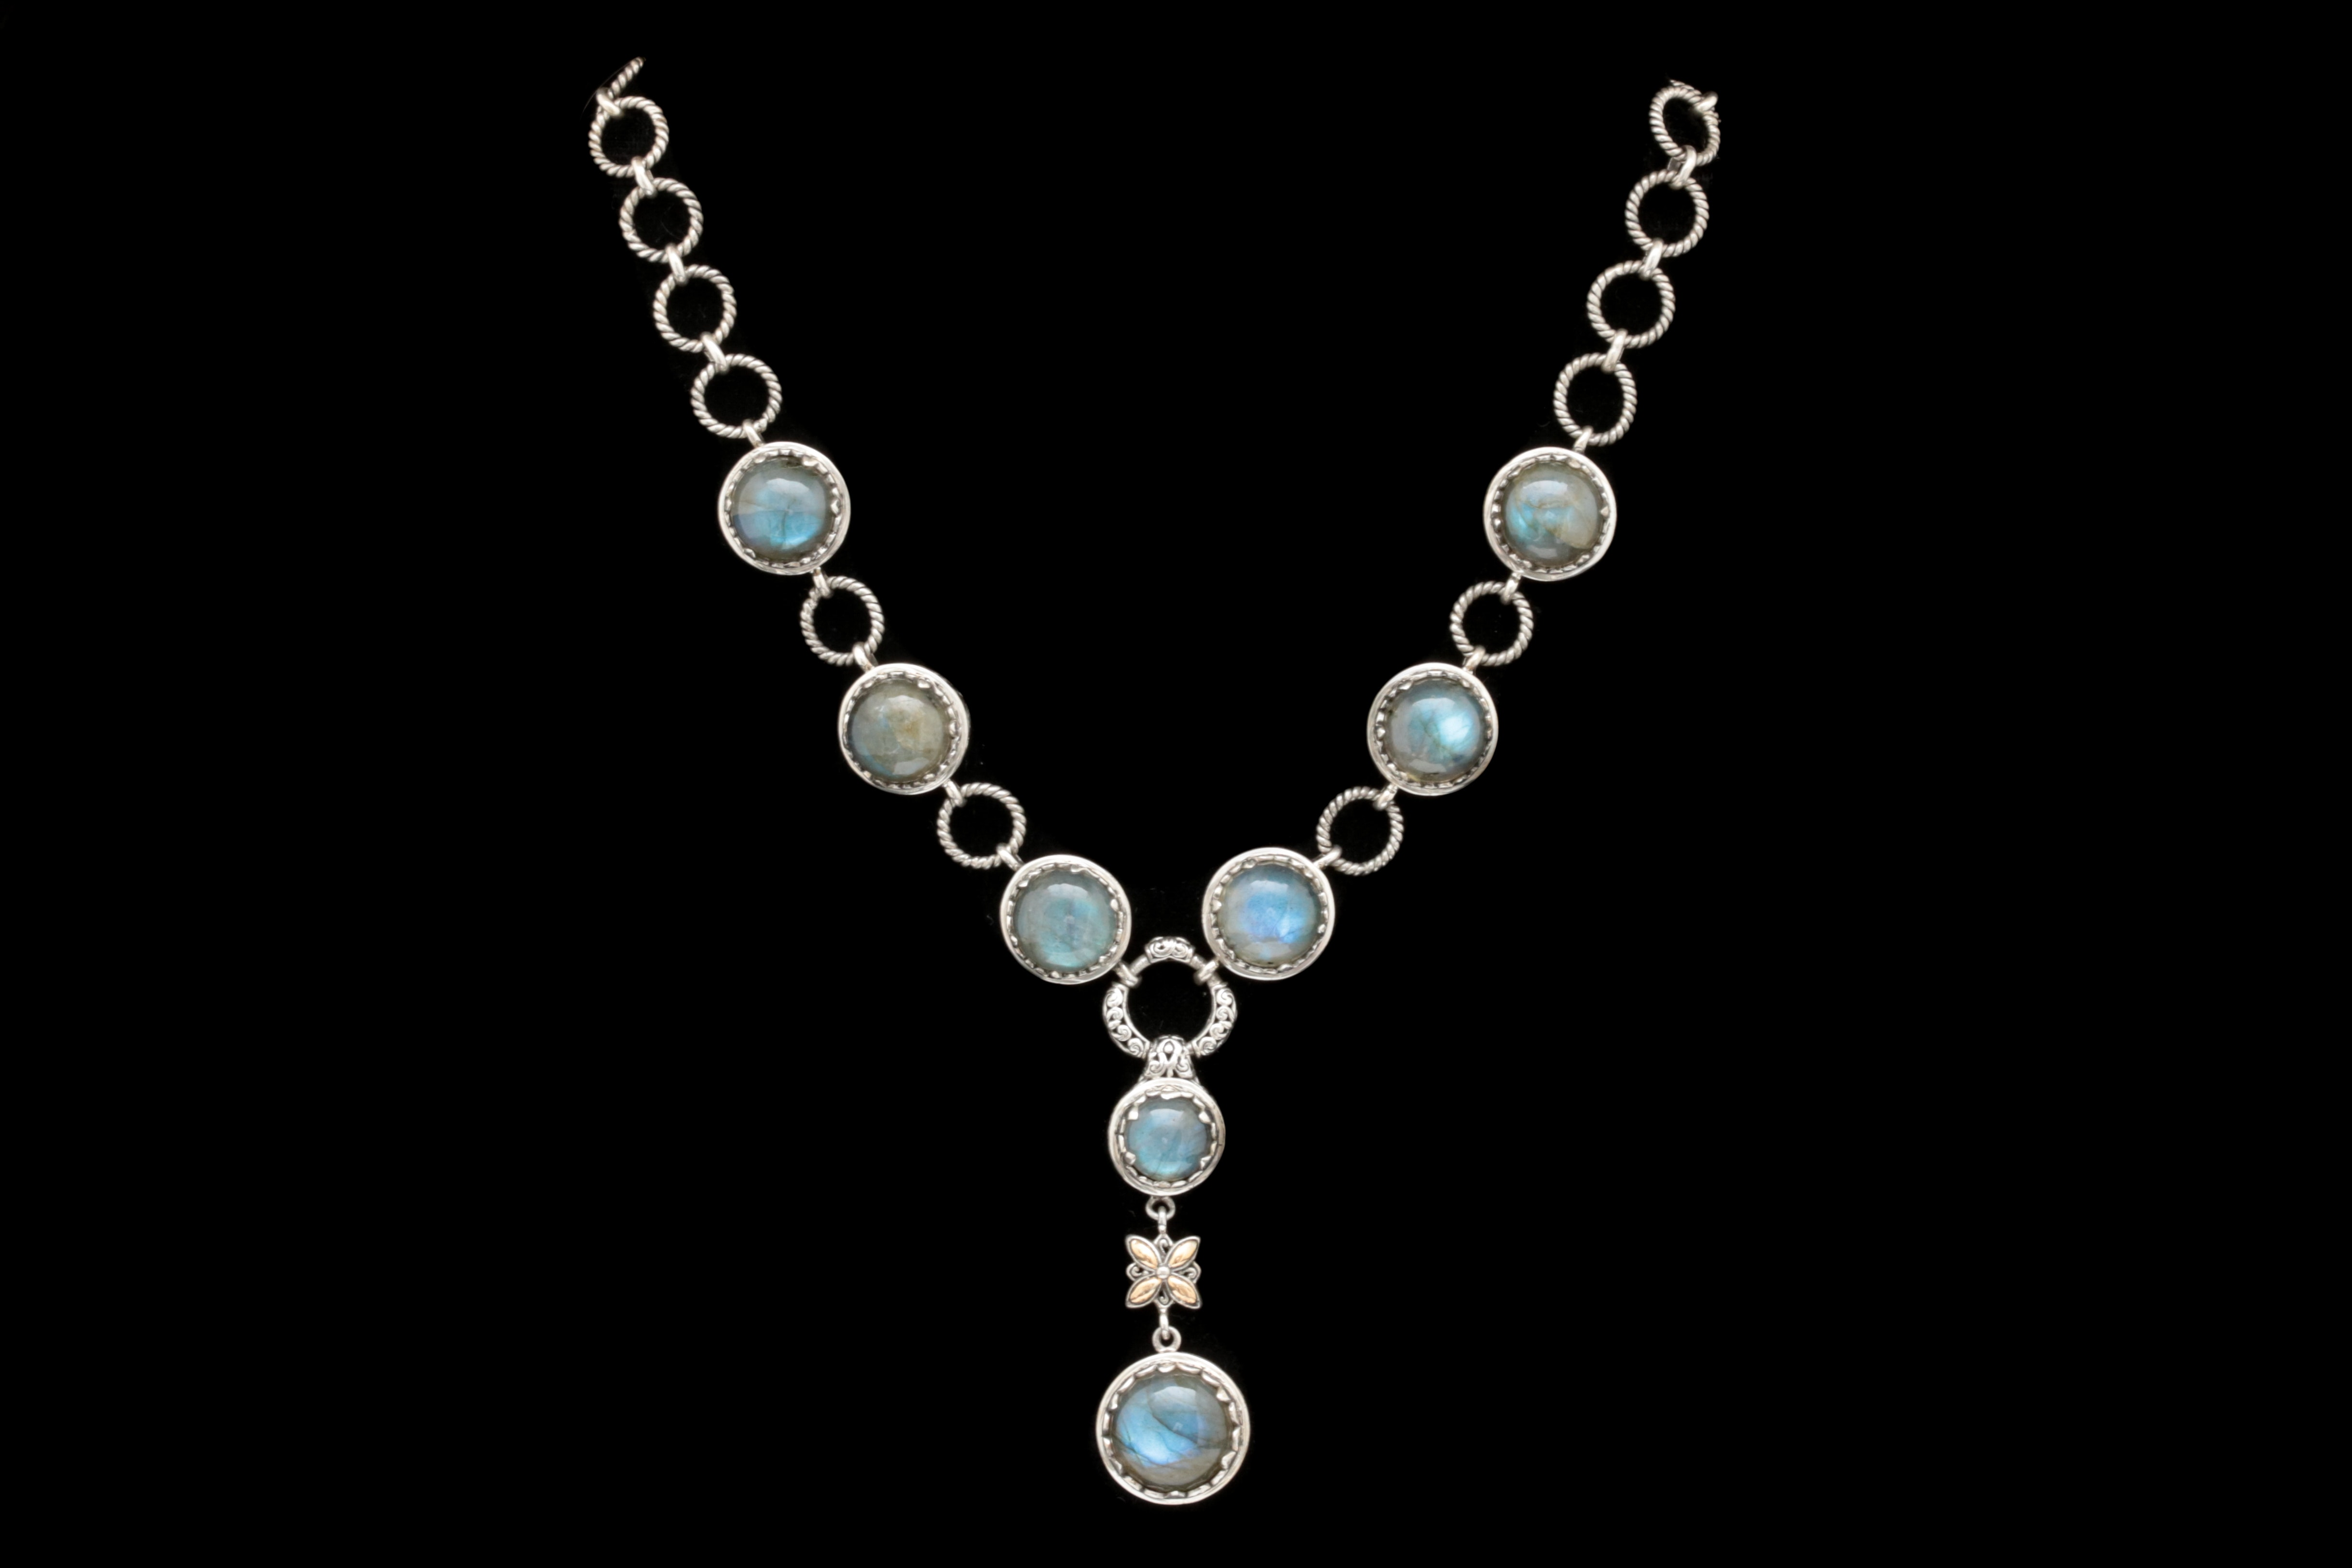 Robert Manse Sterling Silver, 18K Yellow Gold and Labradorite Necklace